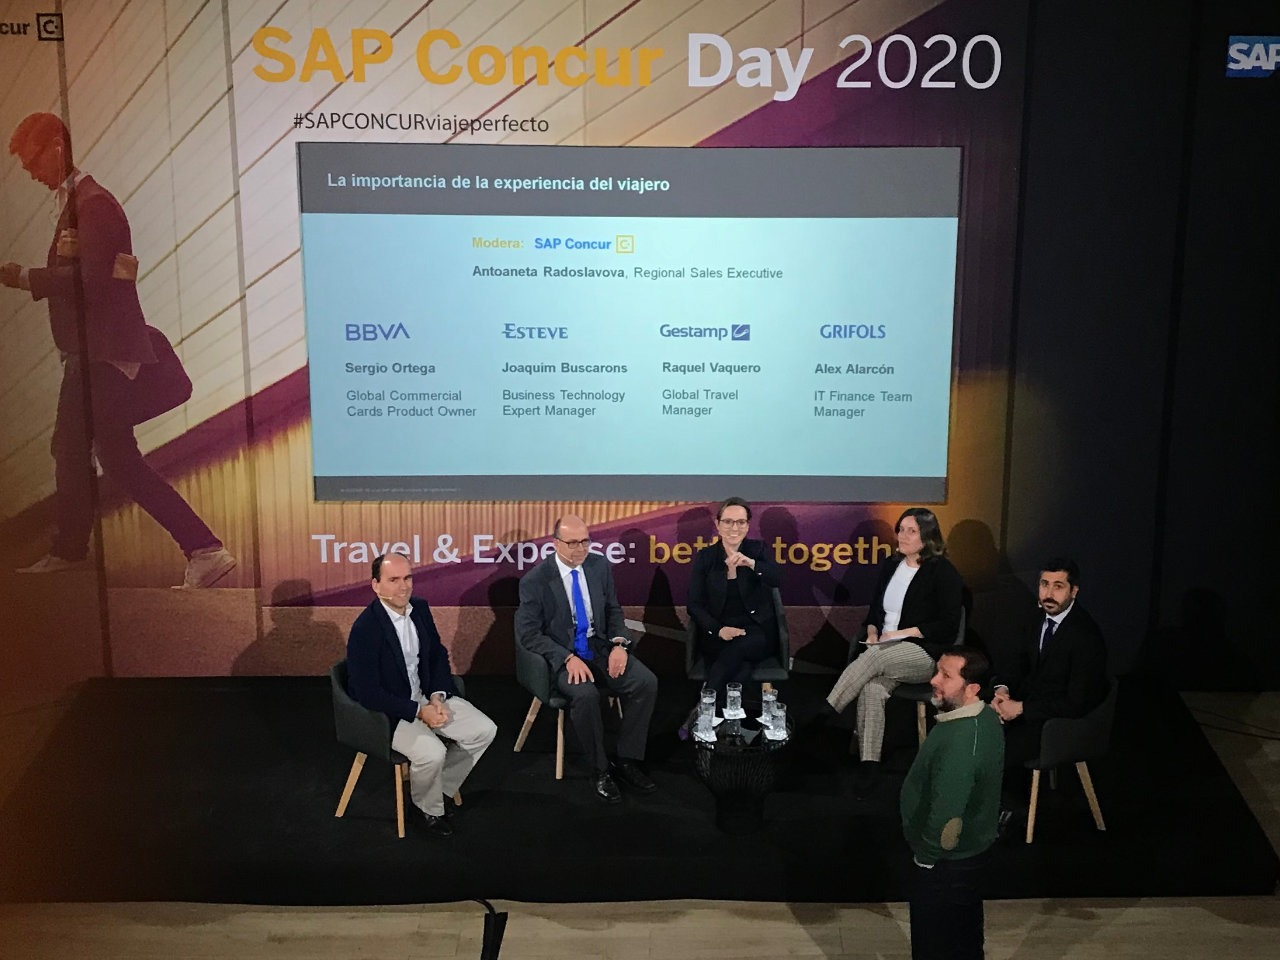 Sap Concur day 1280x960